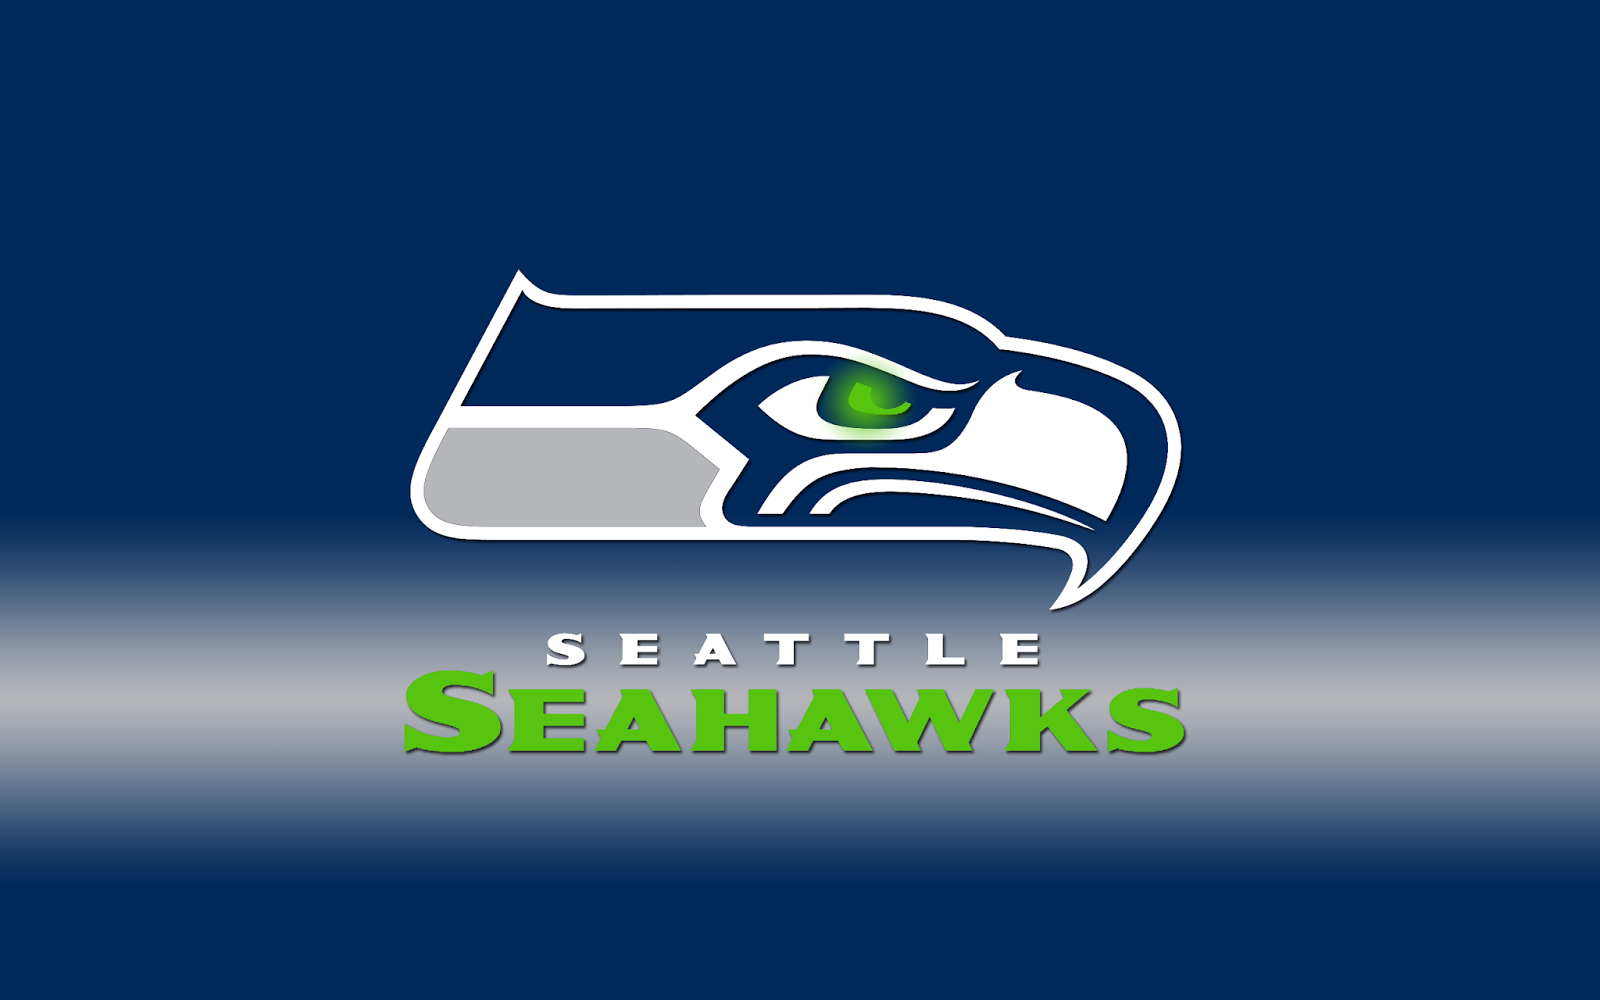 Seattle Seahawks Wallpapers - Top Free